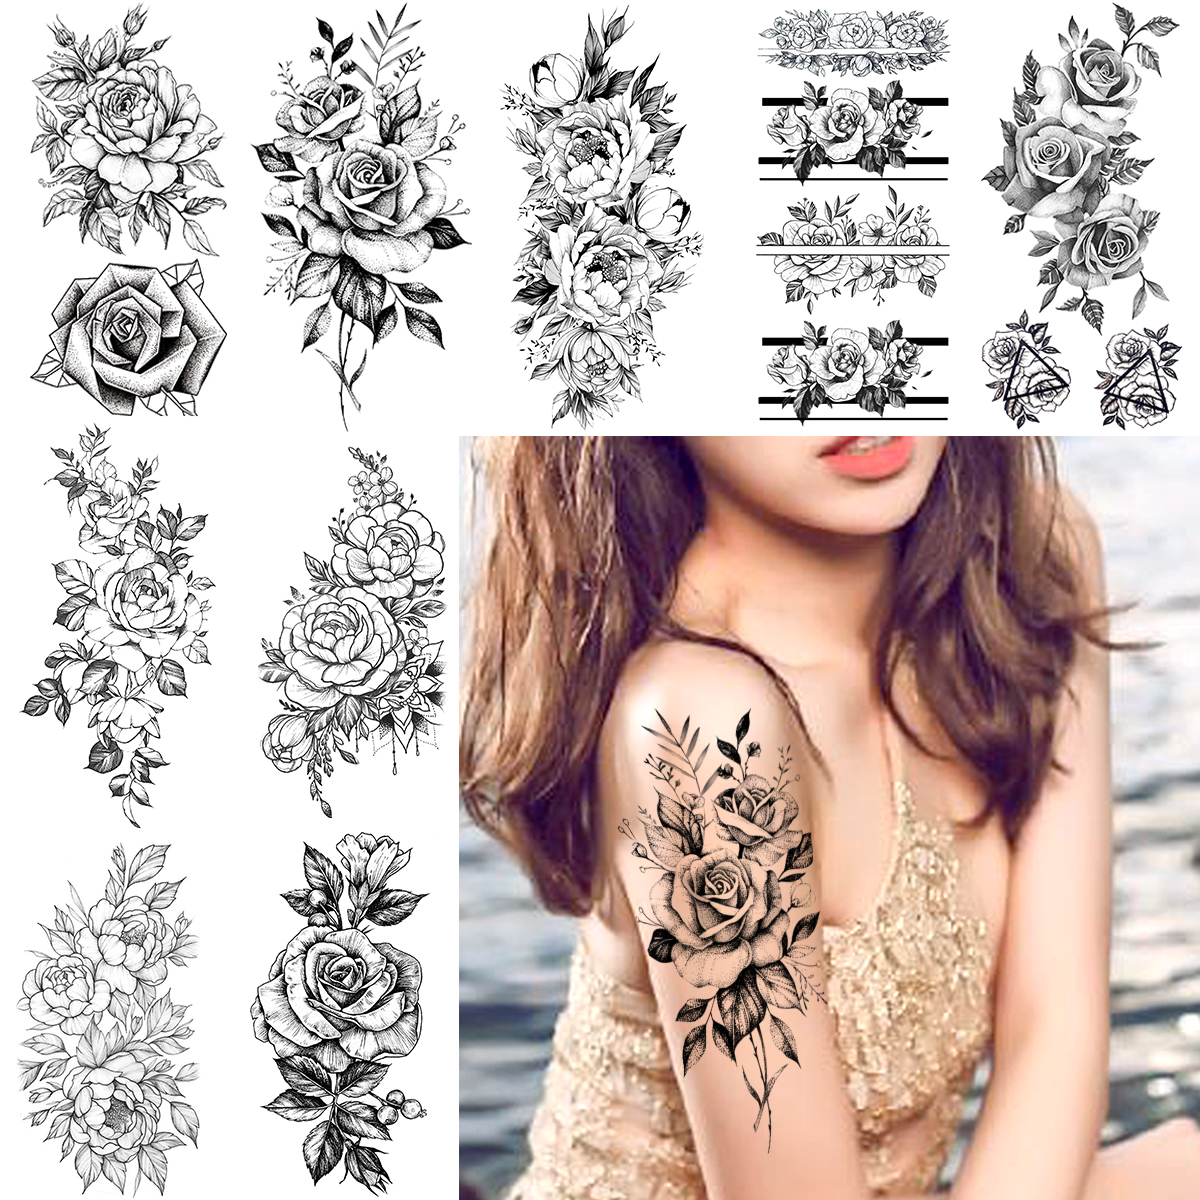 Sexy Women Temporary Tattoos Realistic Rose Flower Arm Tattoo Sticker Waterproof Bloosom Henna Body Art Fake Tatoo Makeup Decals